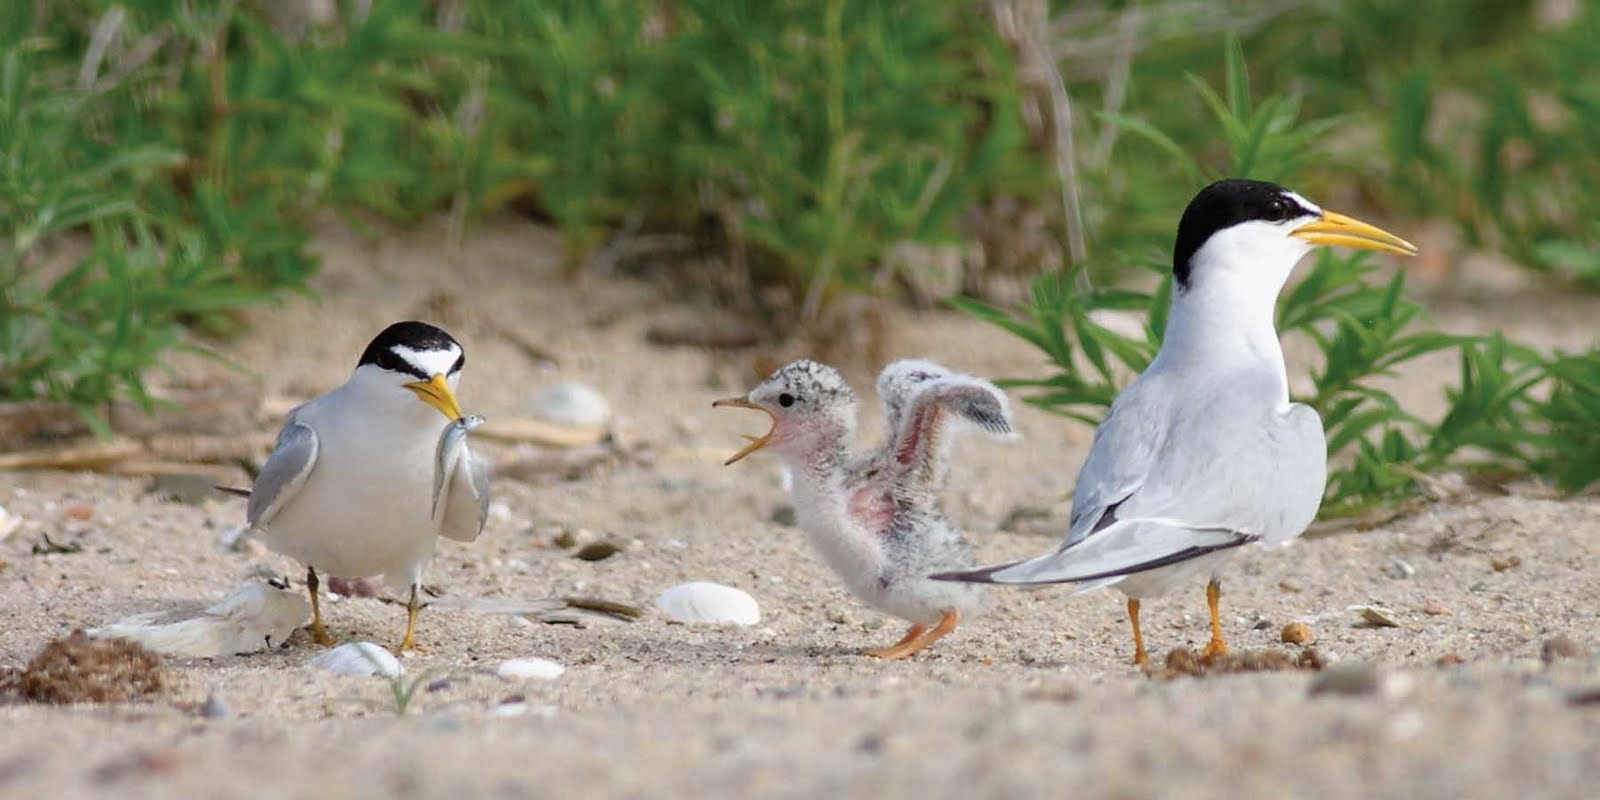 Least terns like the ones pictured here were spotted in the Malibu Lagoon for the first time in over 70 years. (Photo courtesy Google Images)